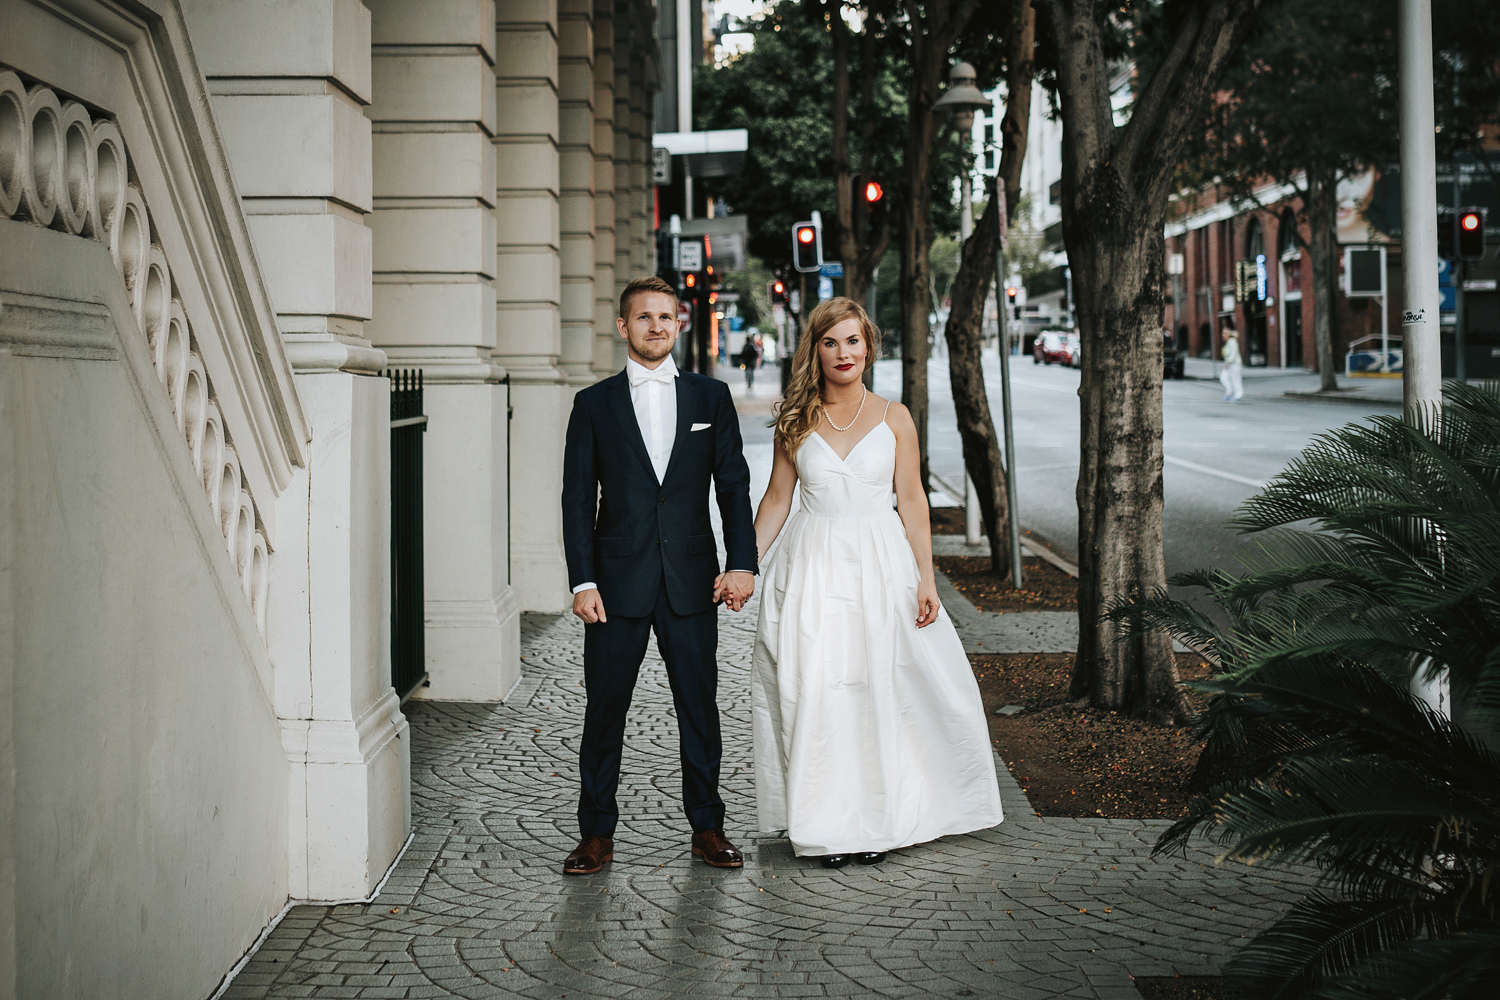 Bride and groom stand holding hands in city after wedding.